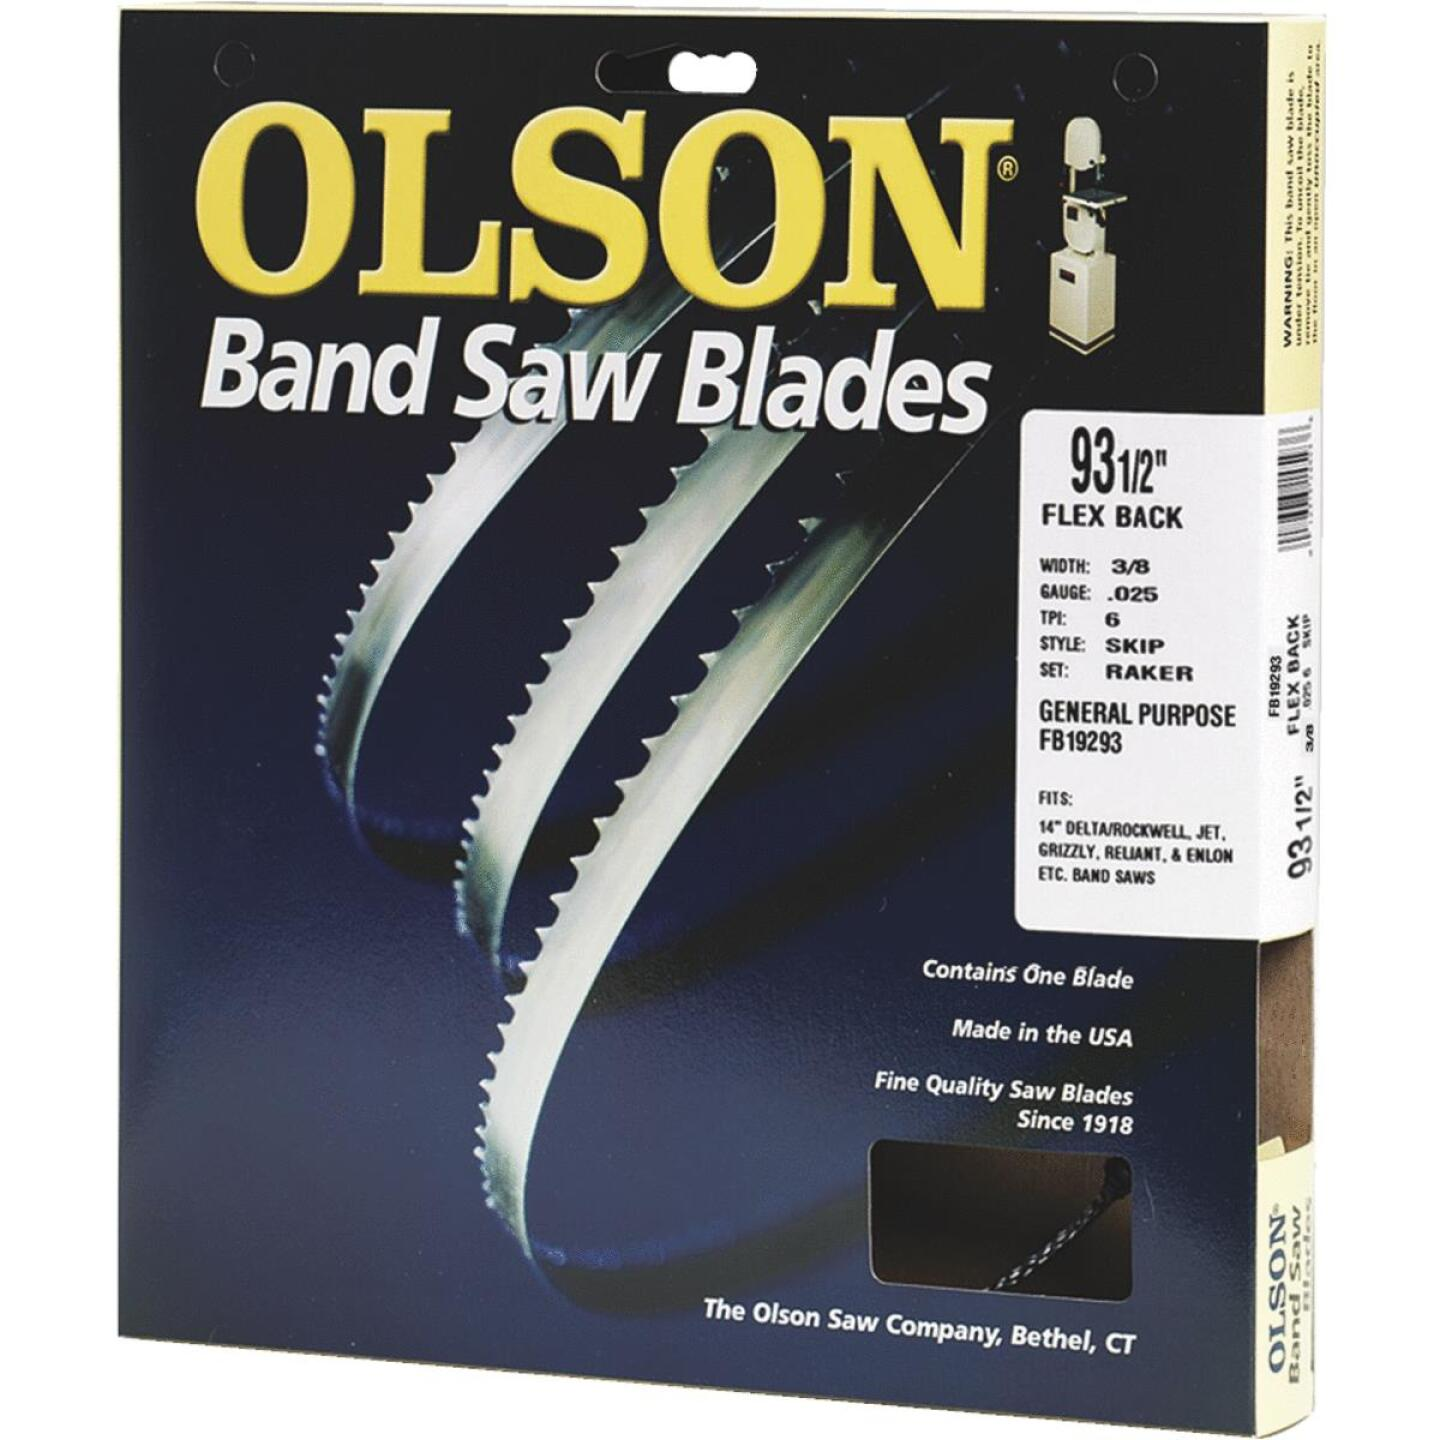 Olson 93-1/2 In. x 3/8 In. 4 TPI Skip Flex Back Band Saw Blade Image 1